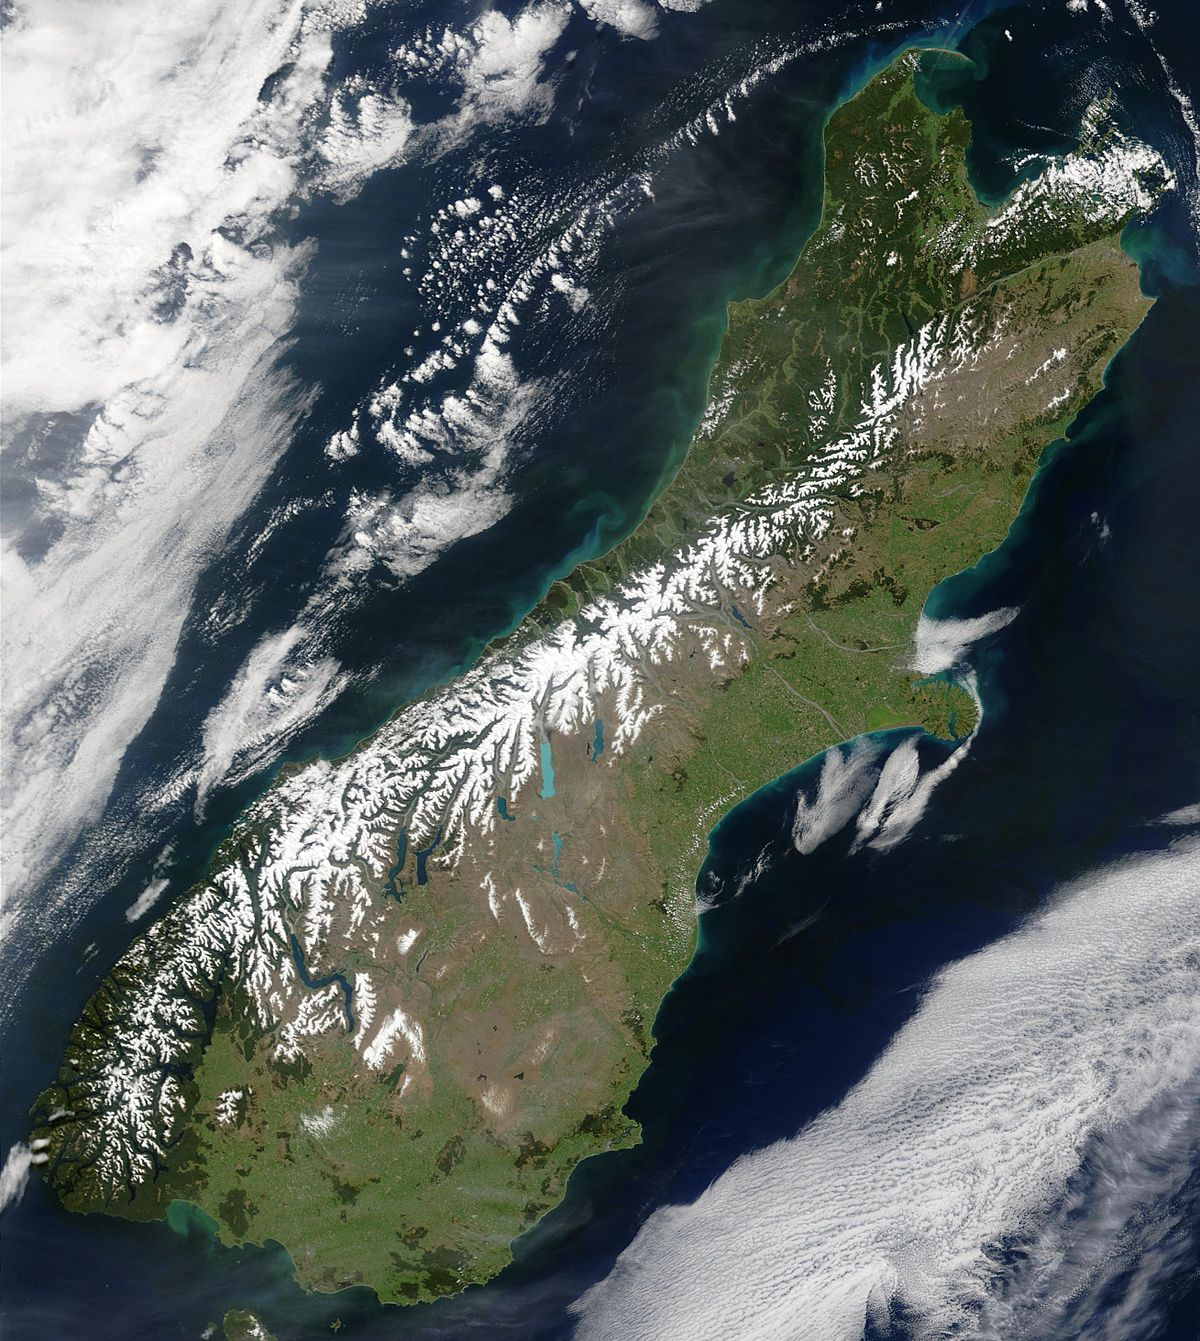 South Island of New Zealand: description, features, nature and interesting facts